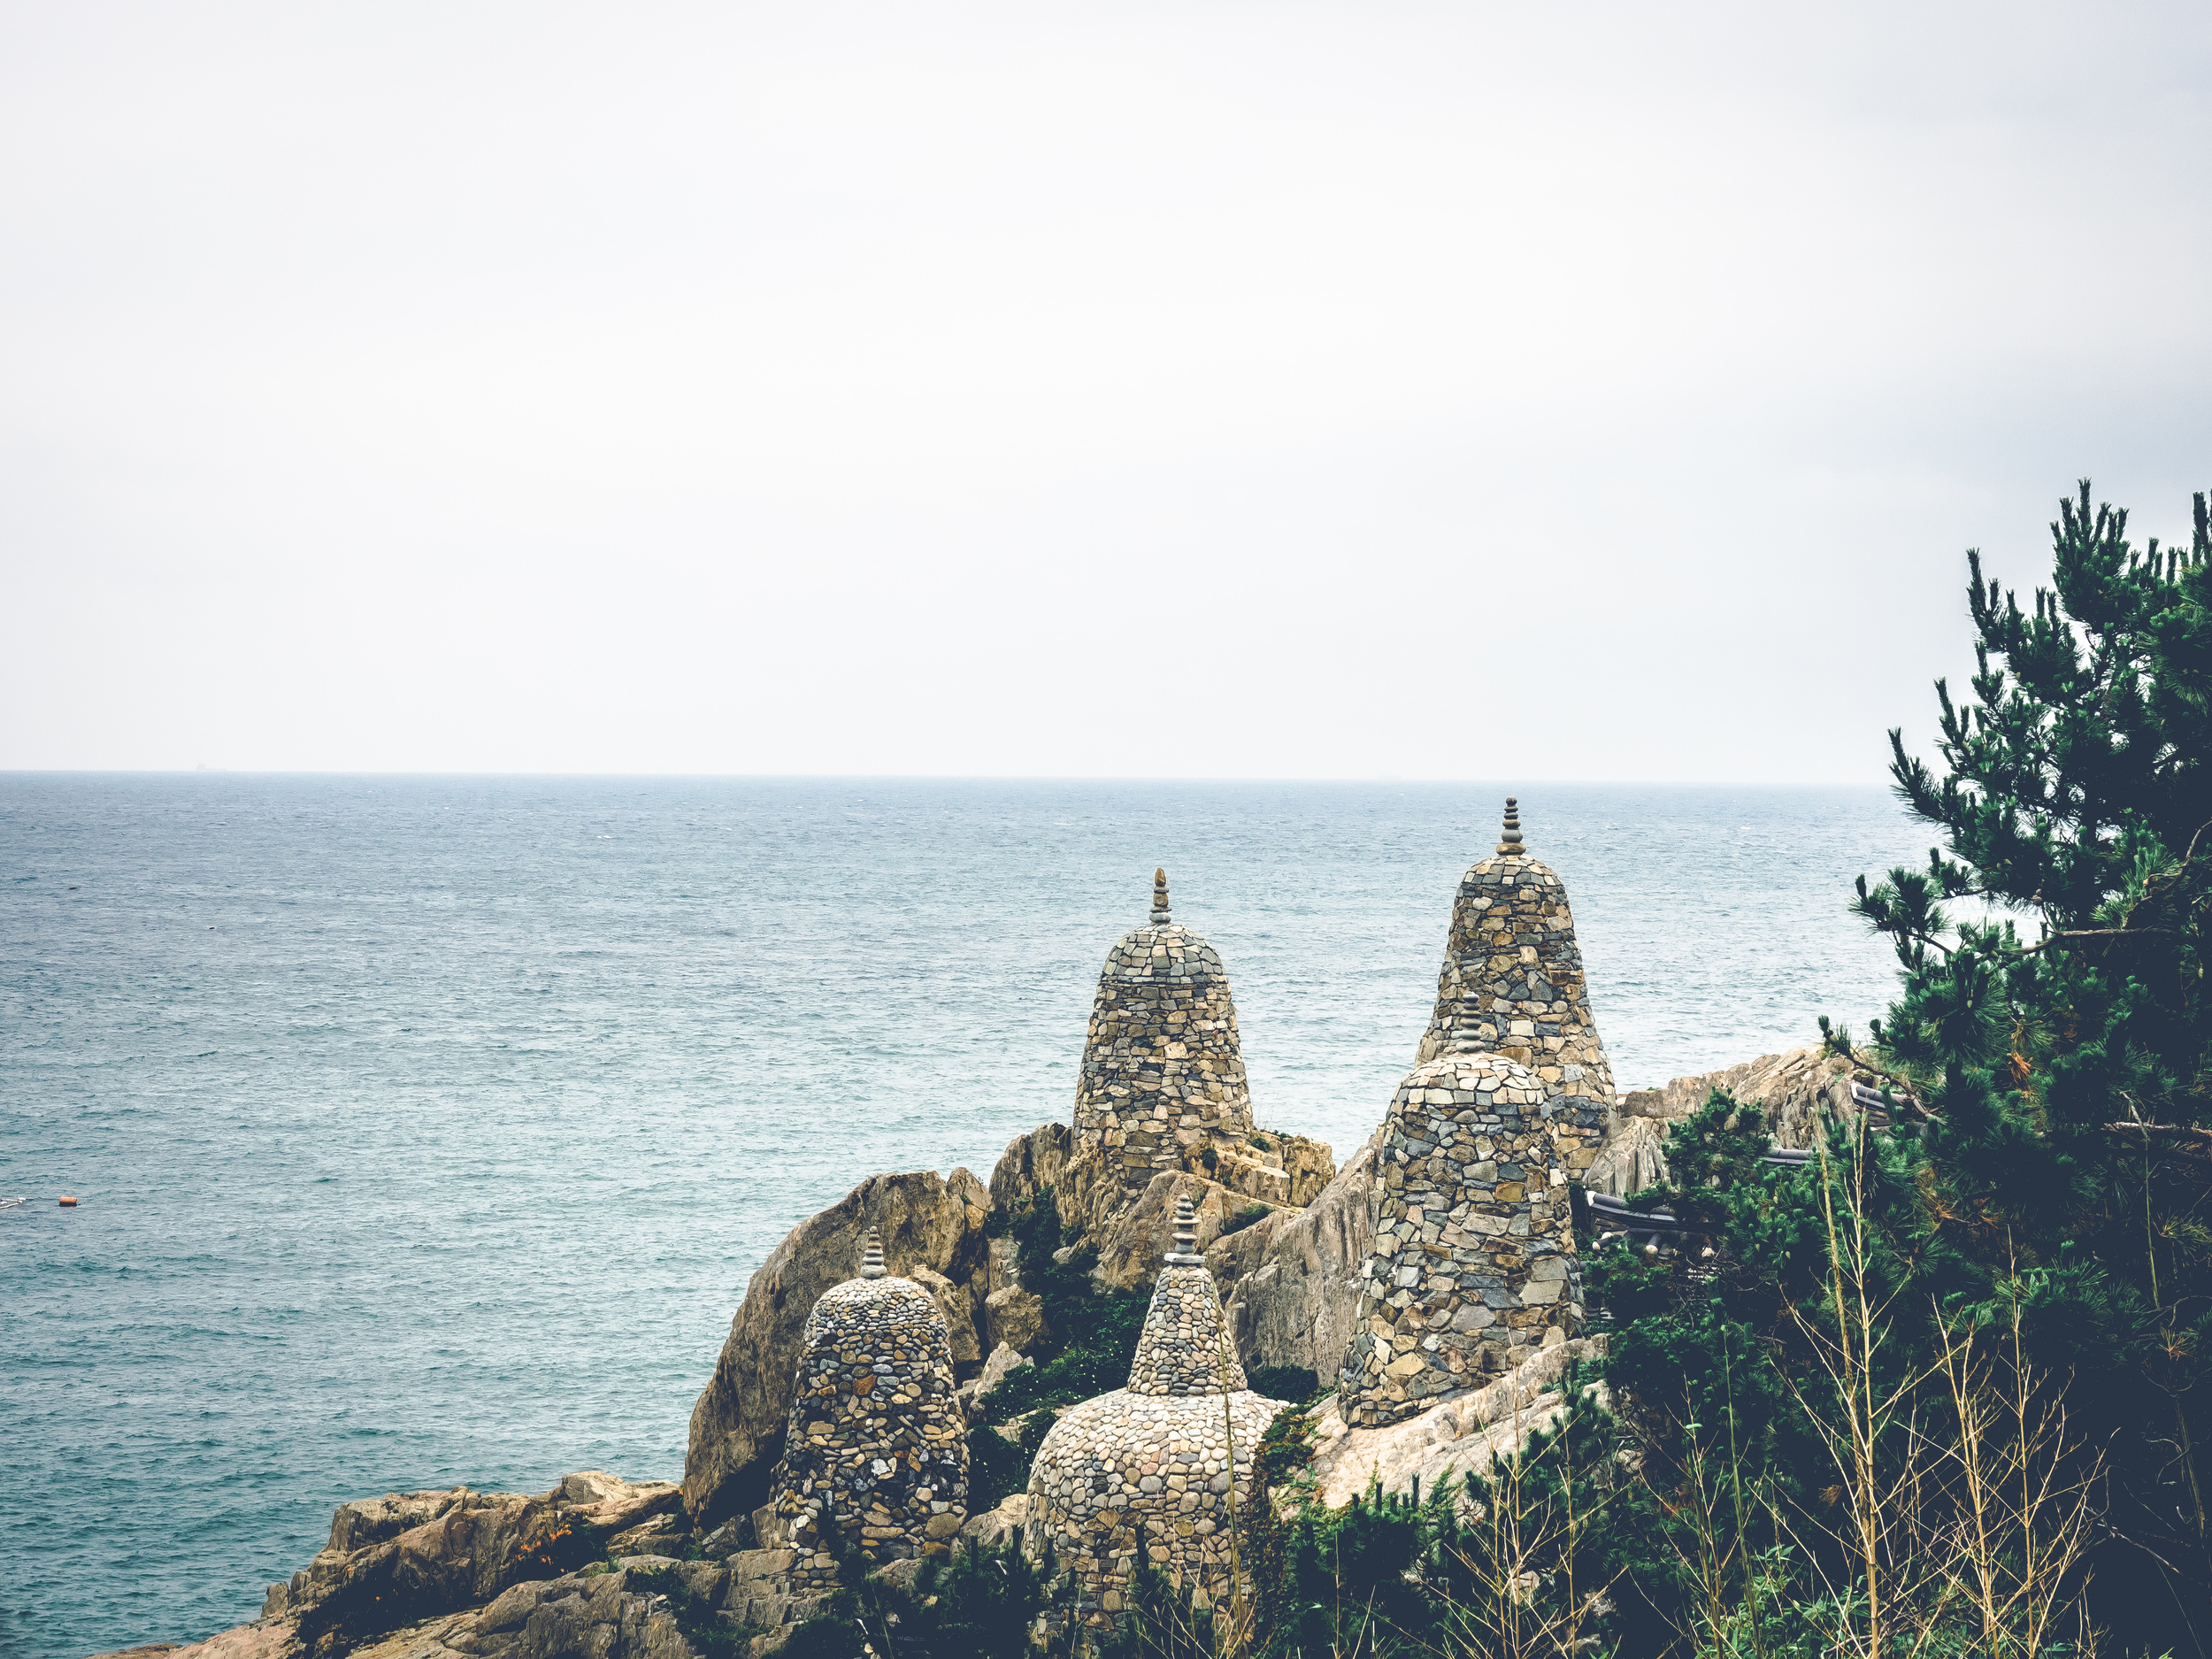 Rockstacks (cairn) and a view of the ocean